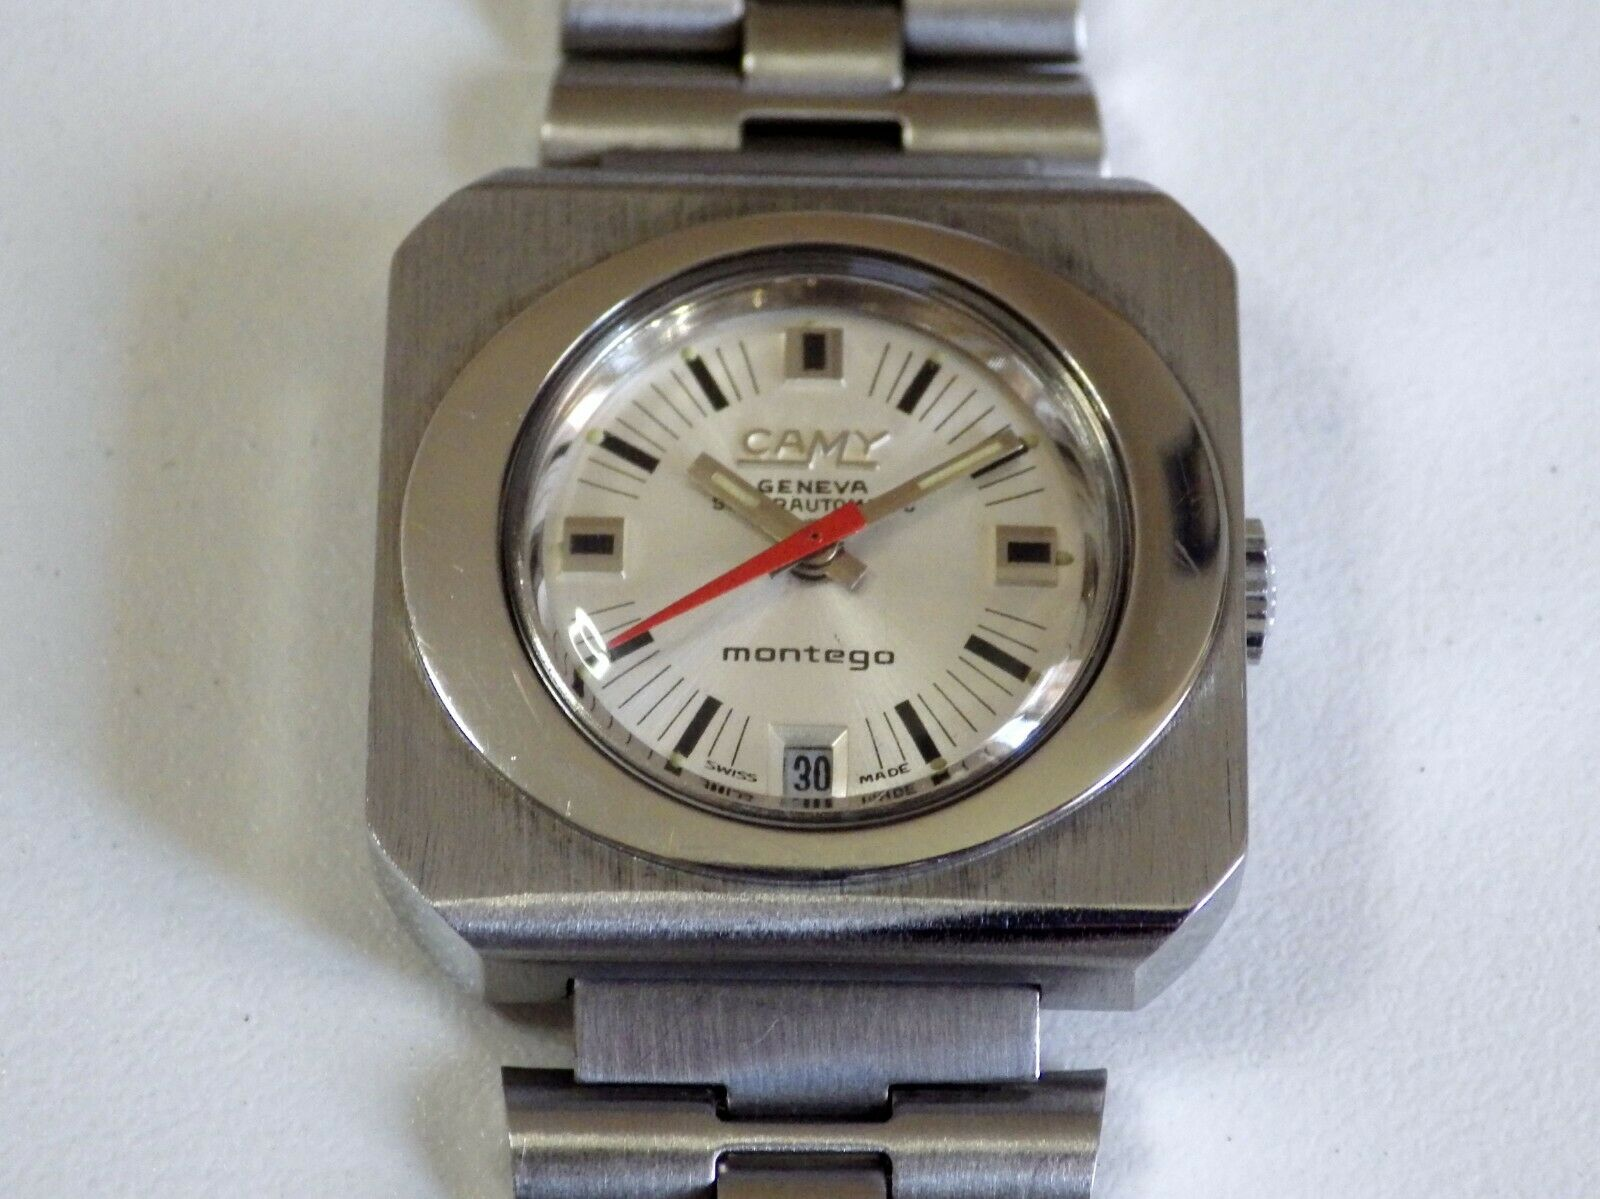 VINTAGE CAMY GENEVE MONTEGO SUPERAUTOMATIC WHITE, SWISS MADE, FOR LADY 1980